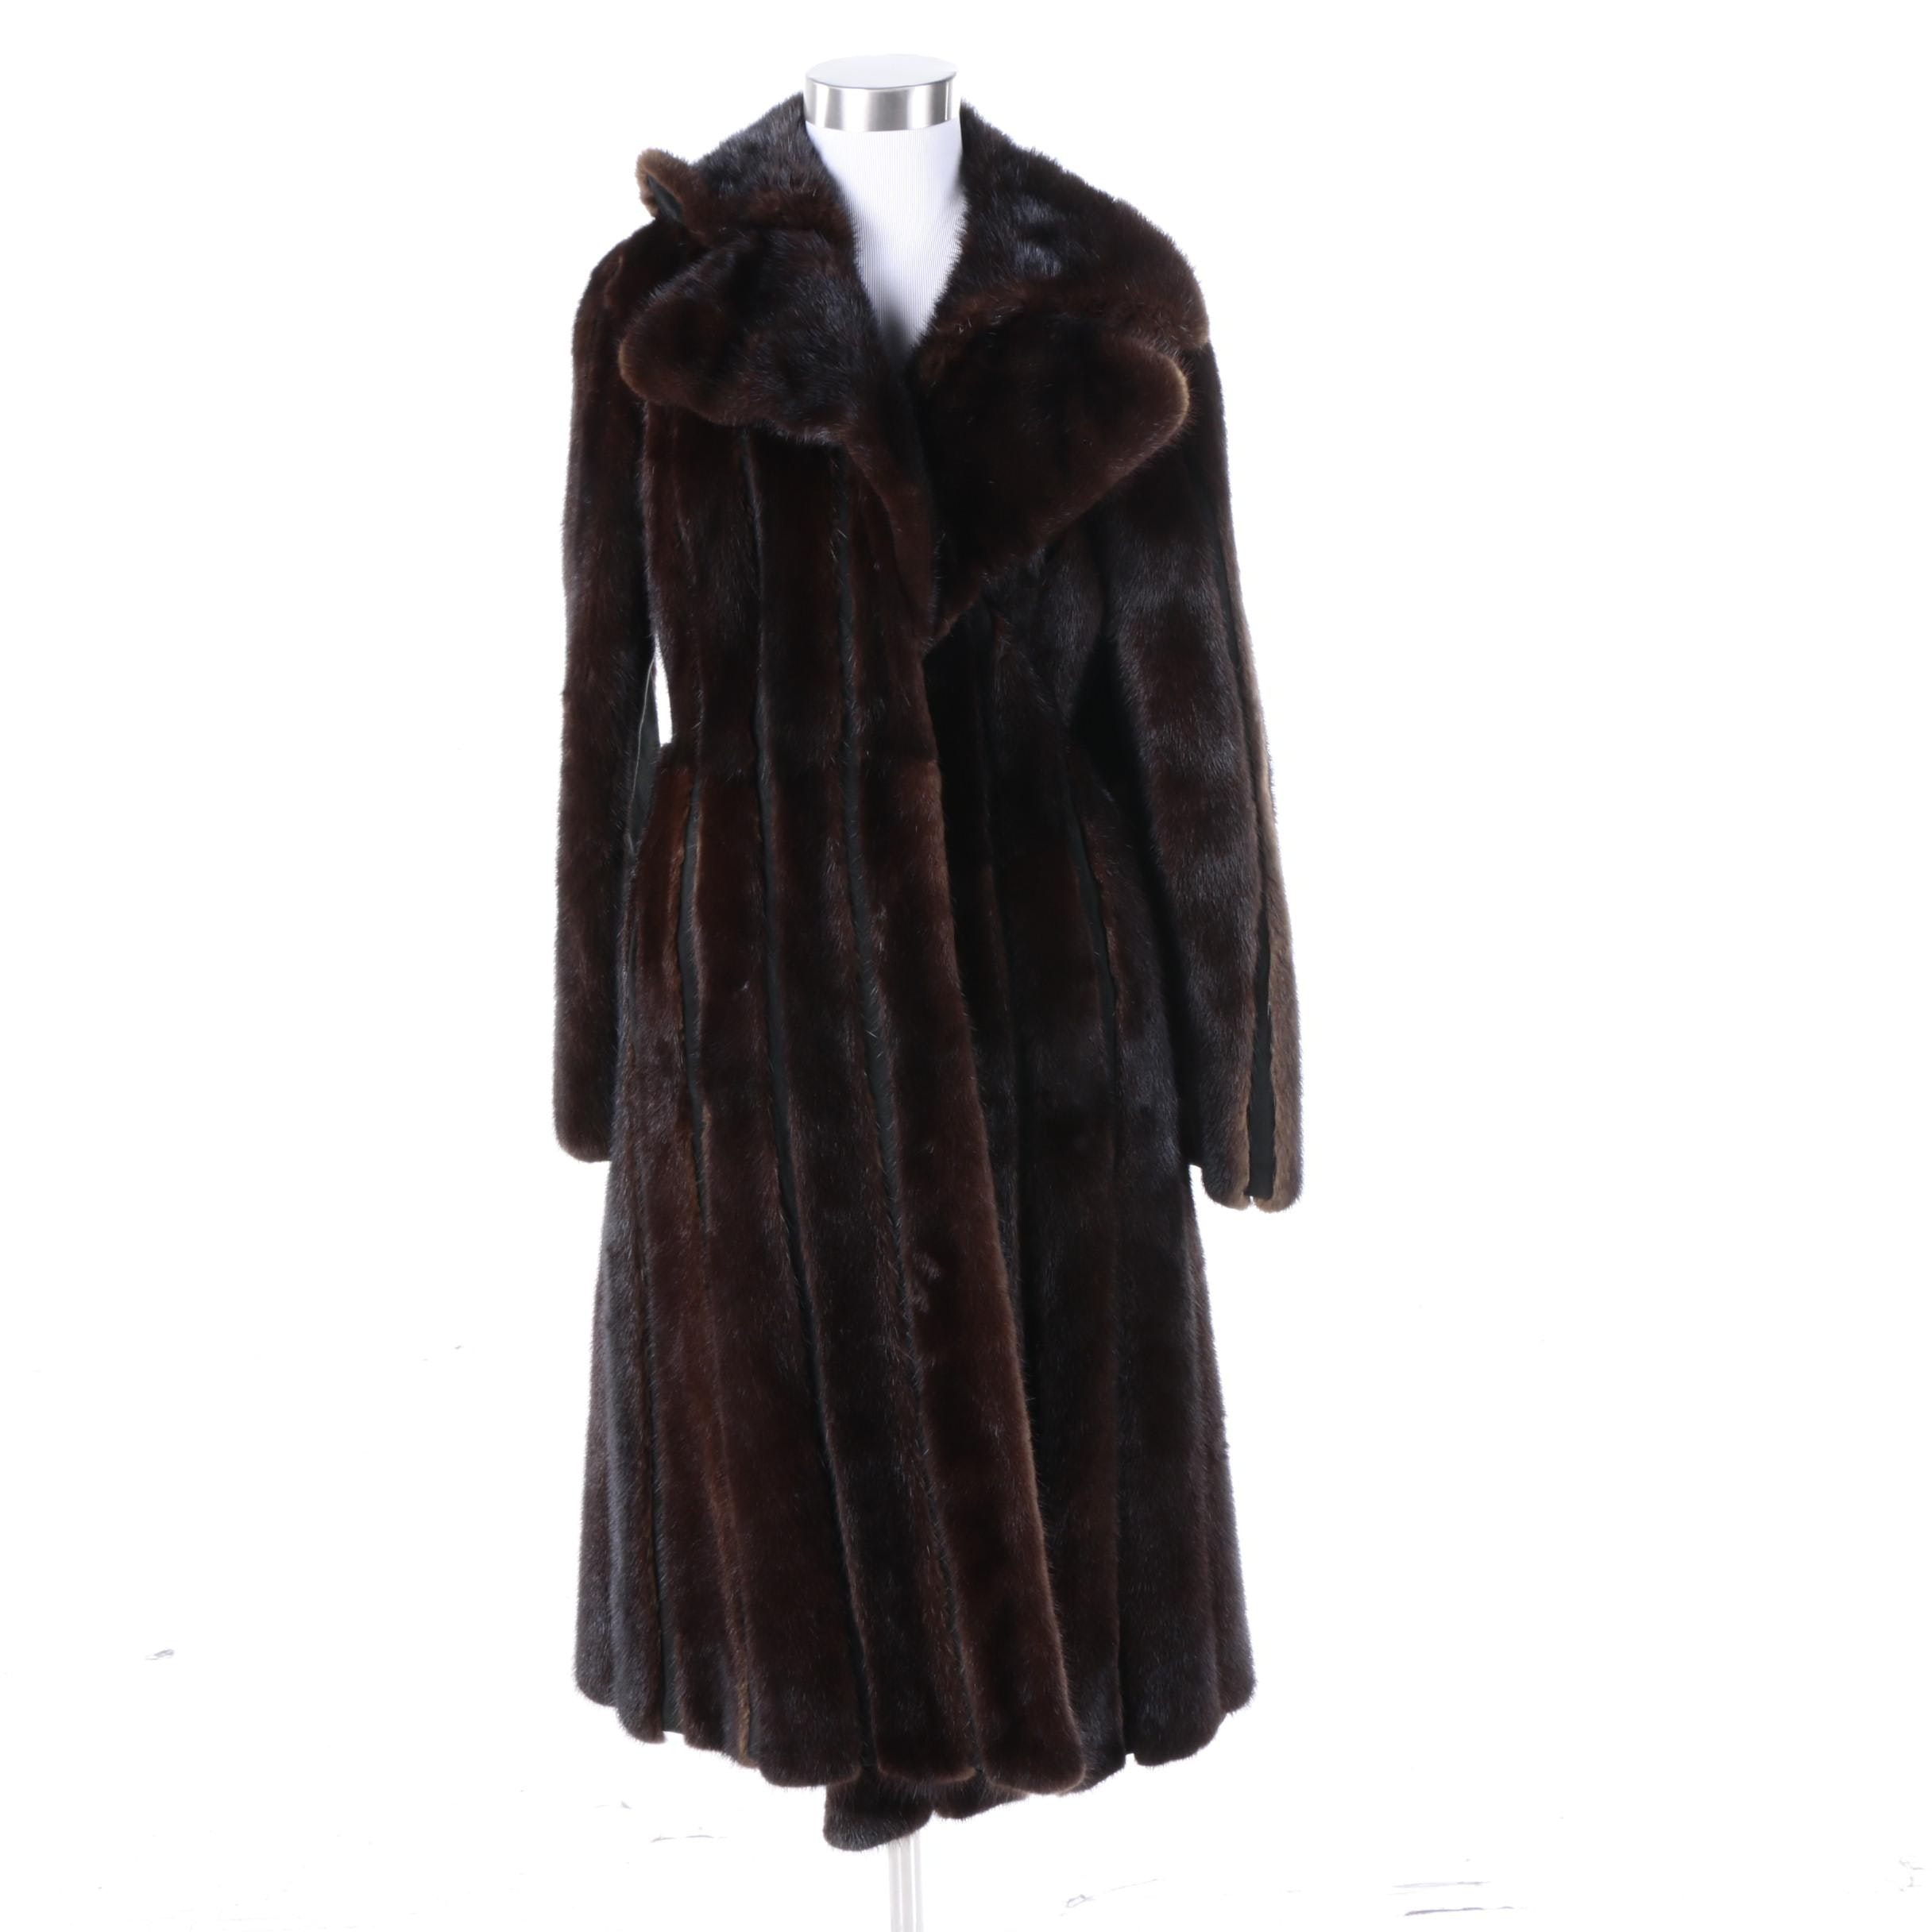 Circa 1970s Vintage Mink and Suede John Tauben Fur Coat